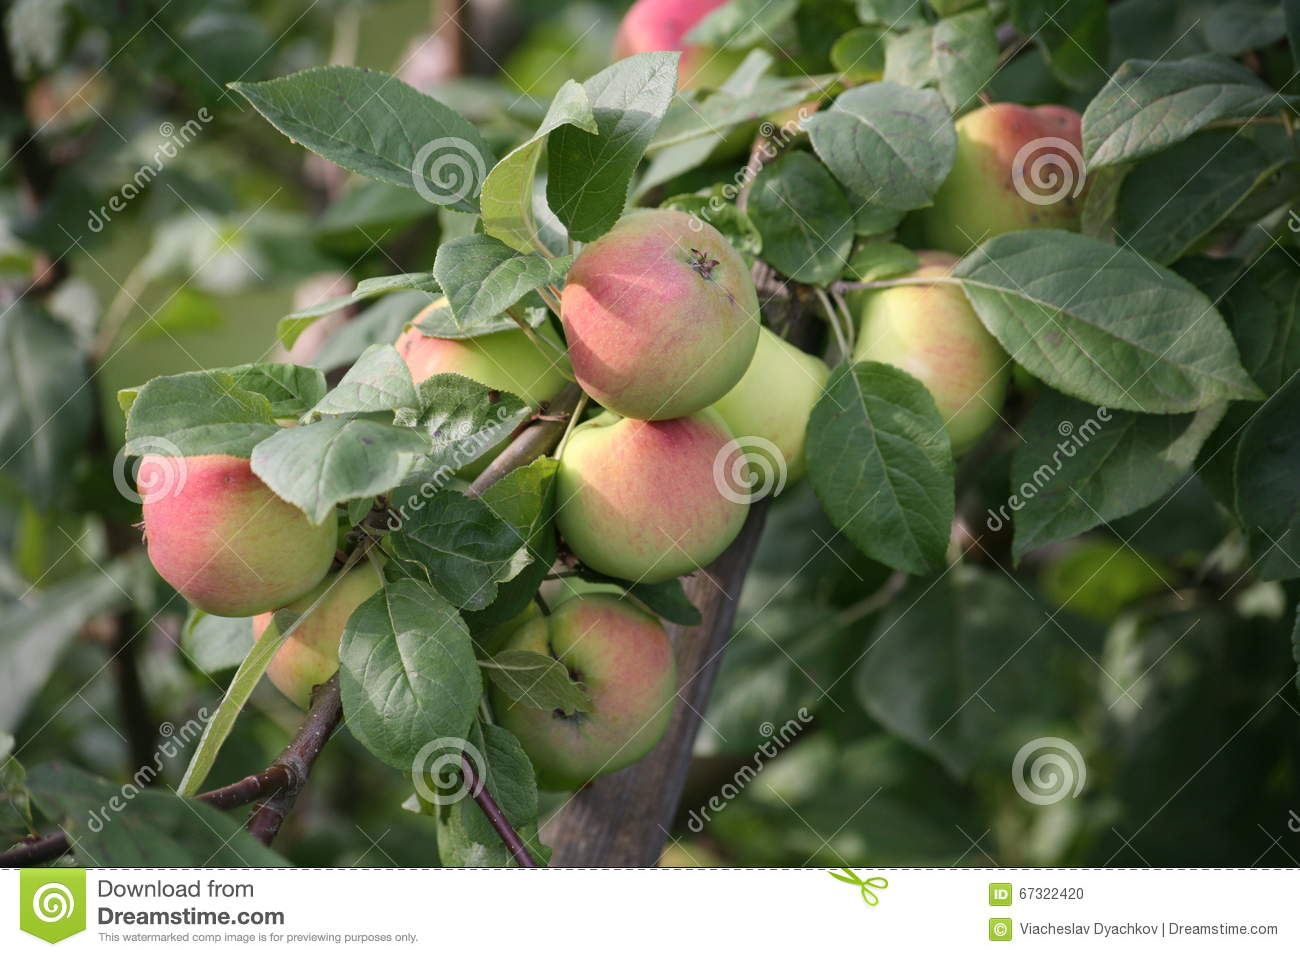 The fruits of yellow red ripe apples on the branches of cultivated Apple trees in summer English garden